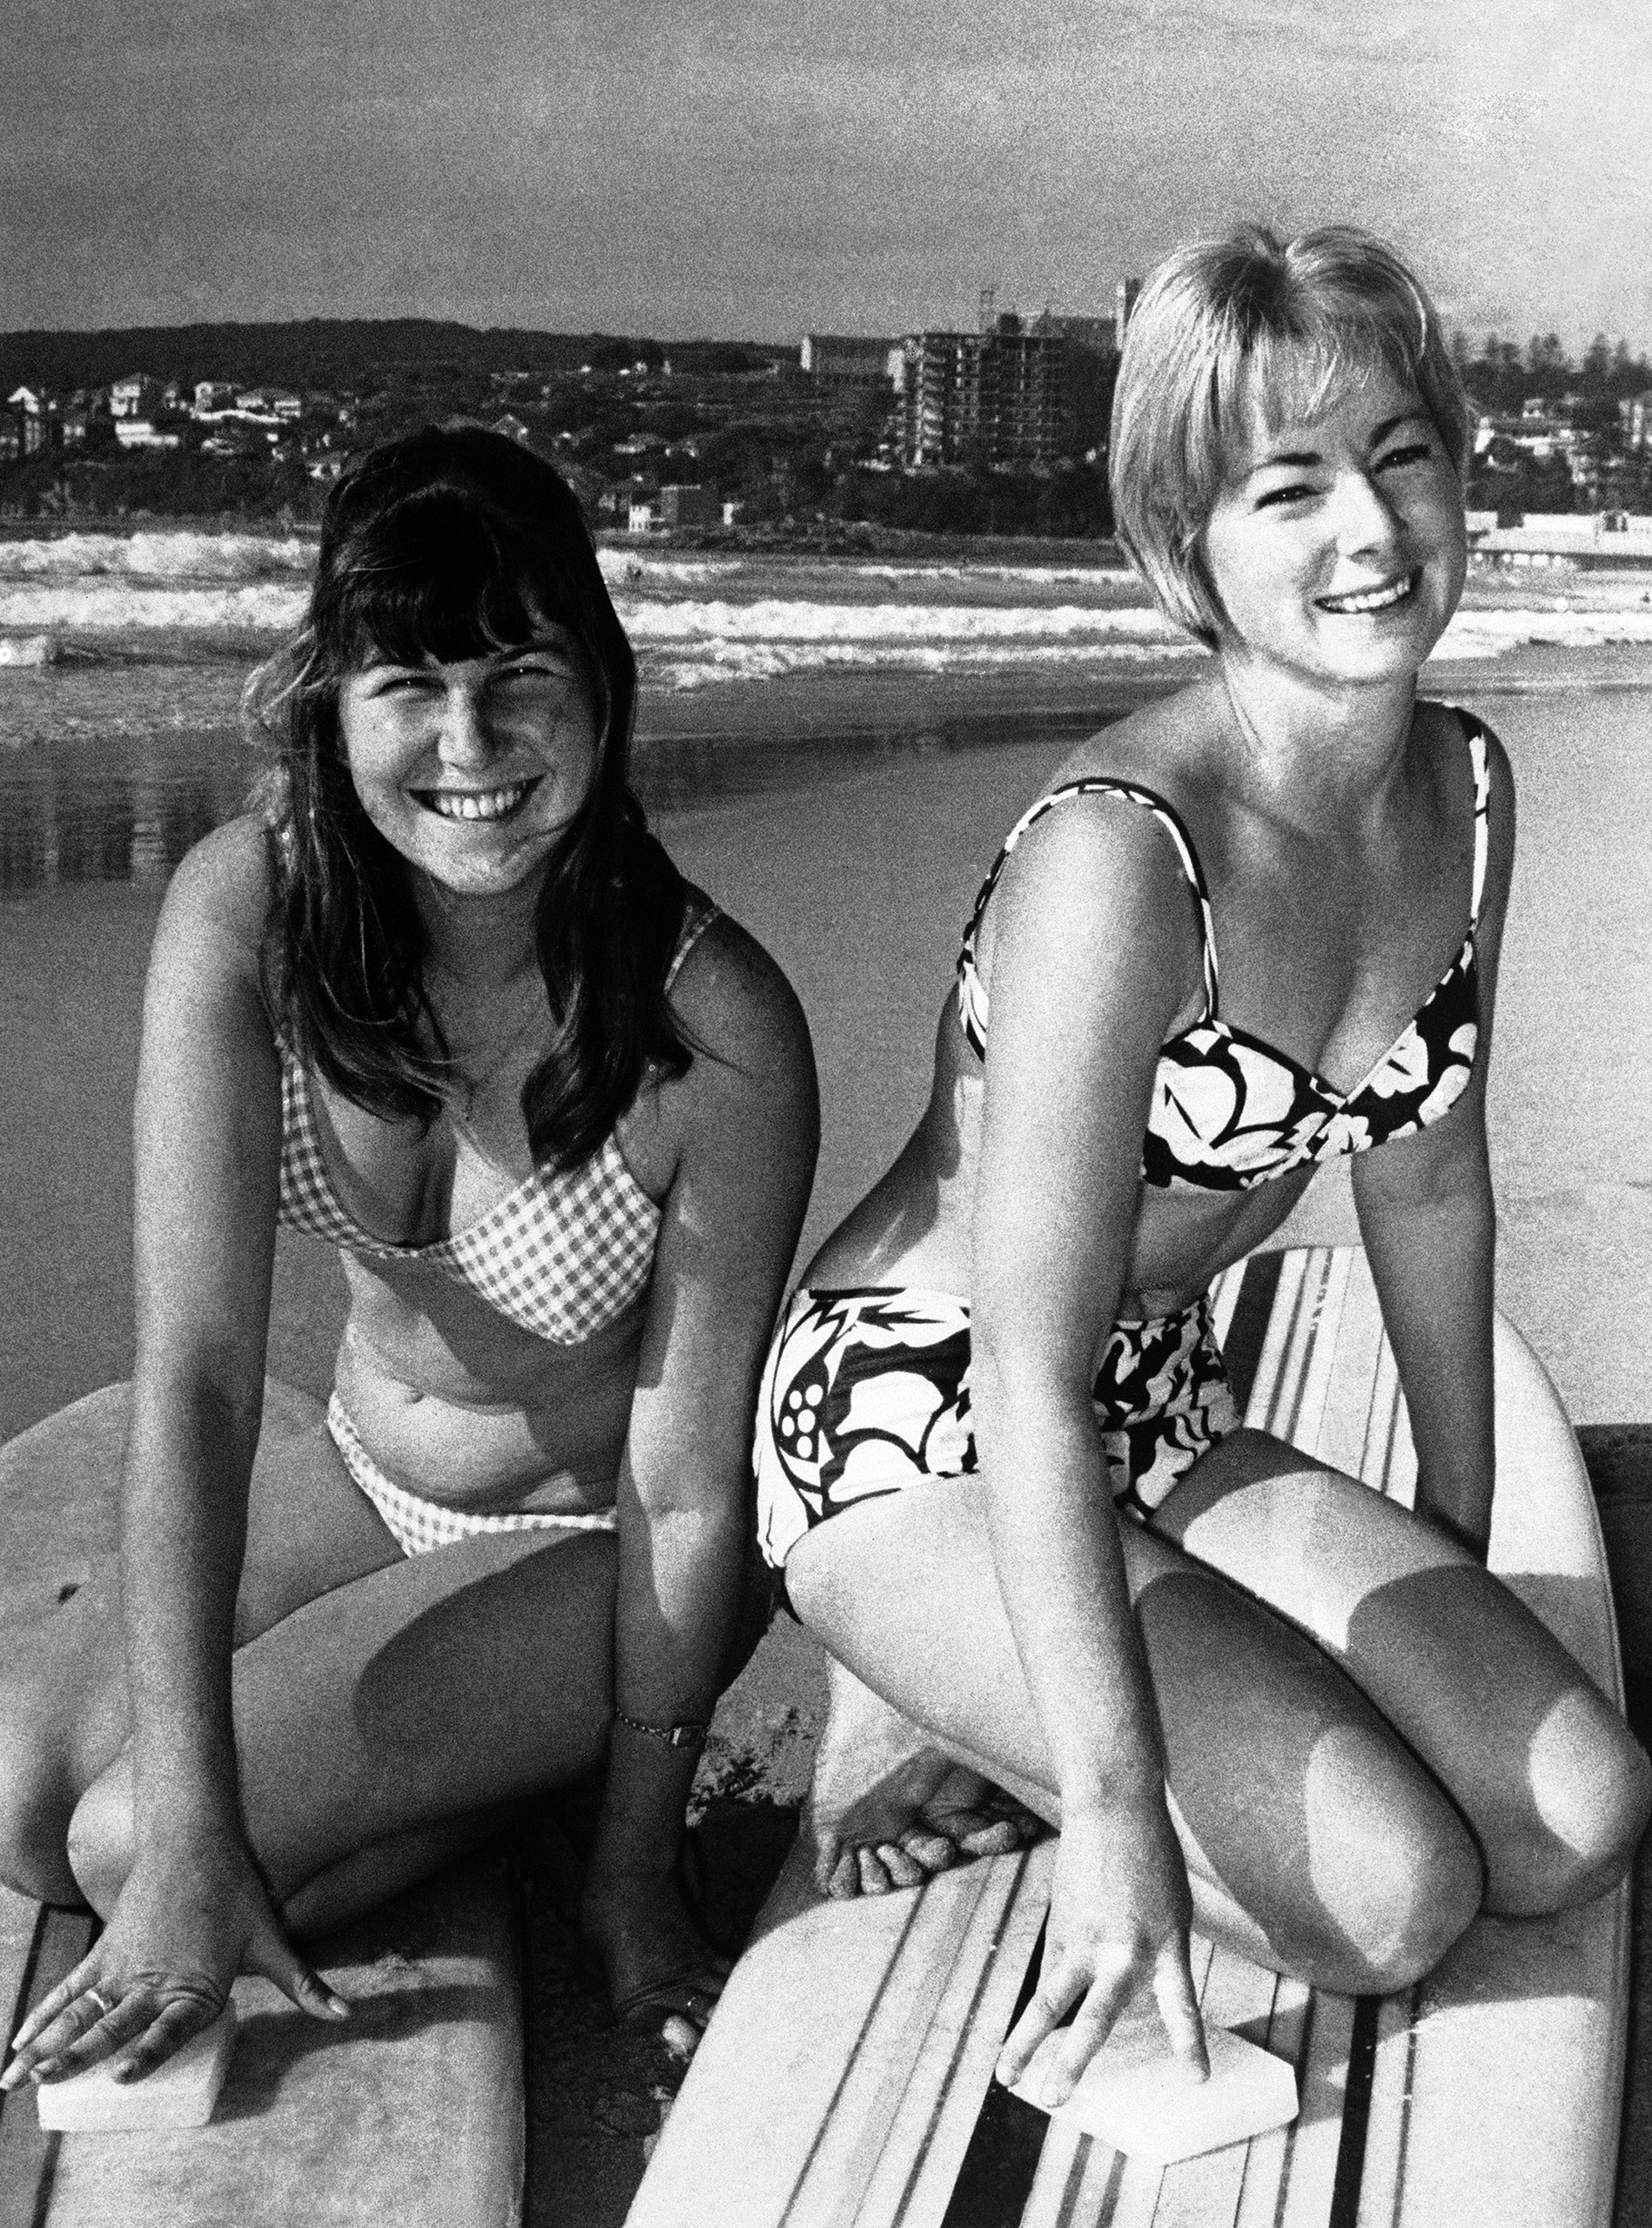 Maureen Horsley, 18, of Sydney, Australia, left, and American champion Linda Benson, 20, of the Encinitas Club of California, prepare for a dip in the Australian surf on May 16, 1964, in a warm-up for the World Surfboard Riding Championships at Sydney's Manly Beach.